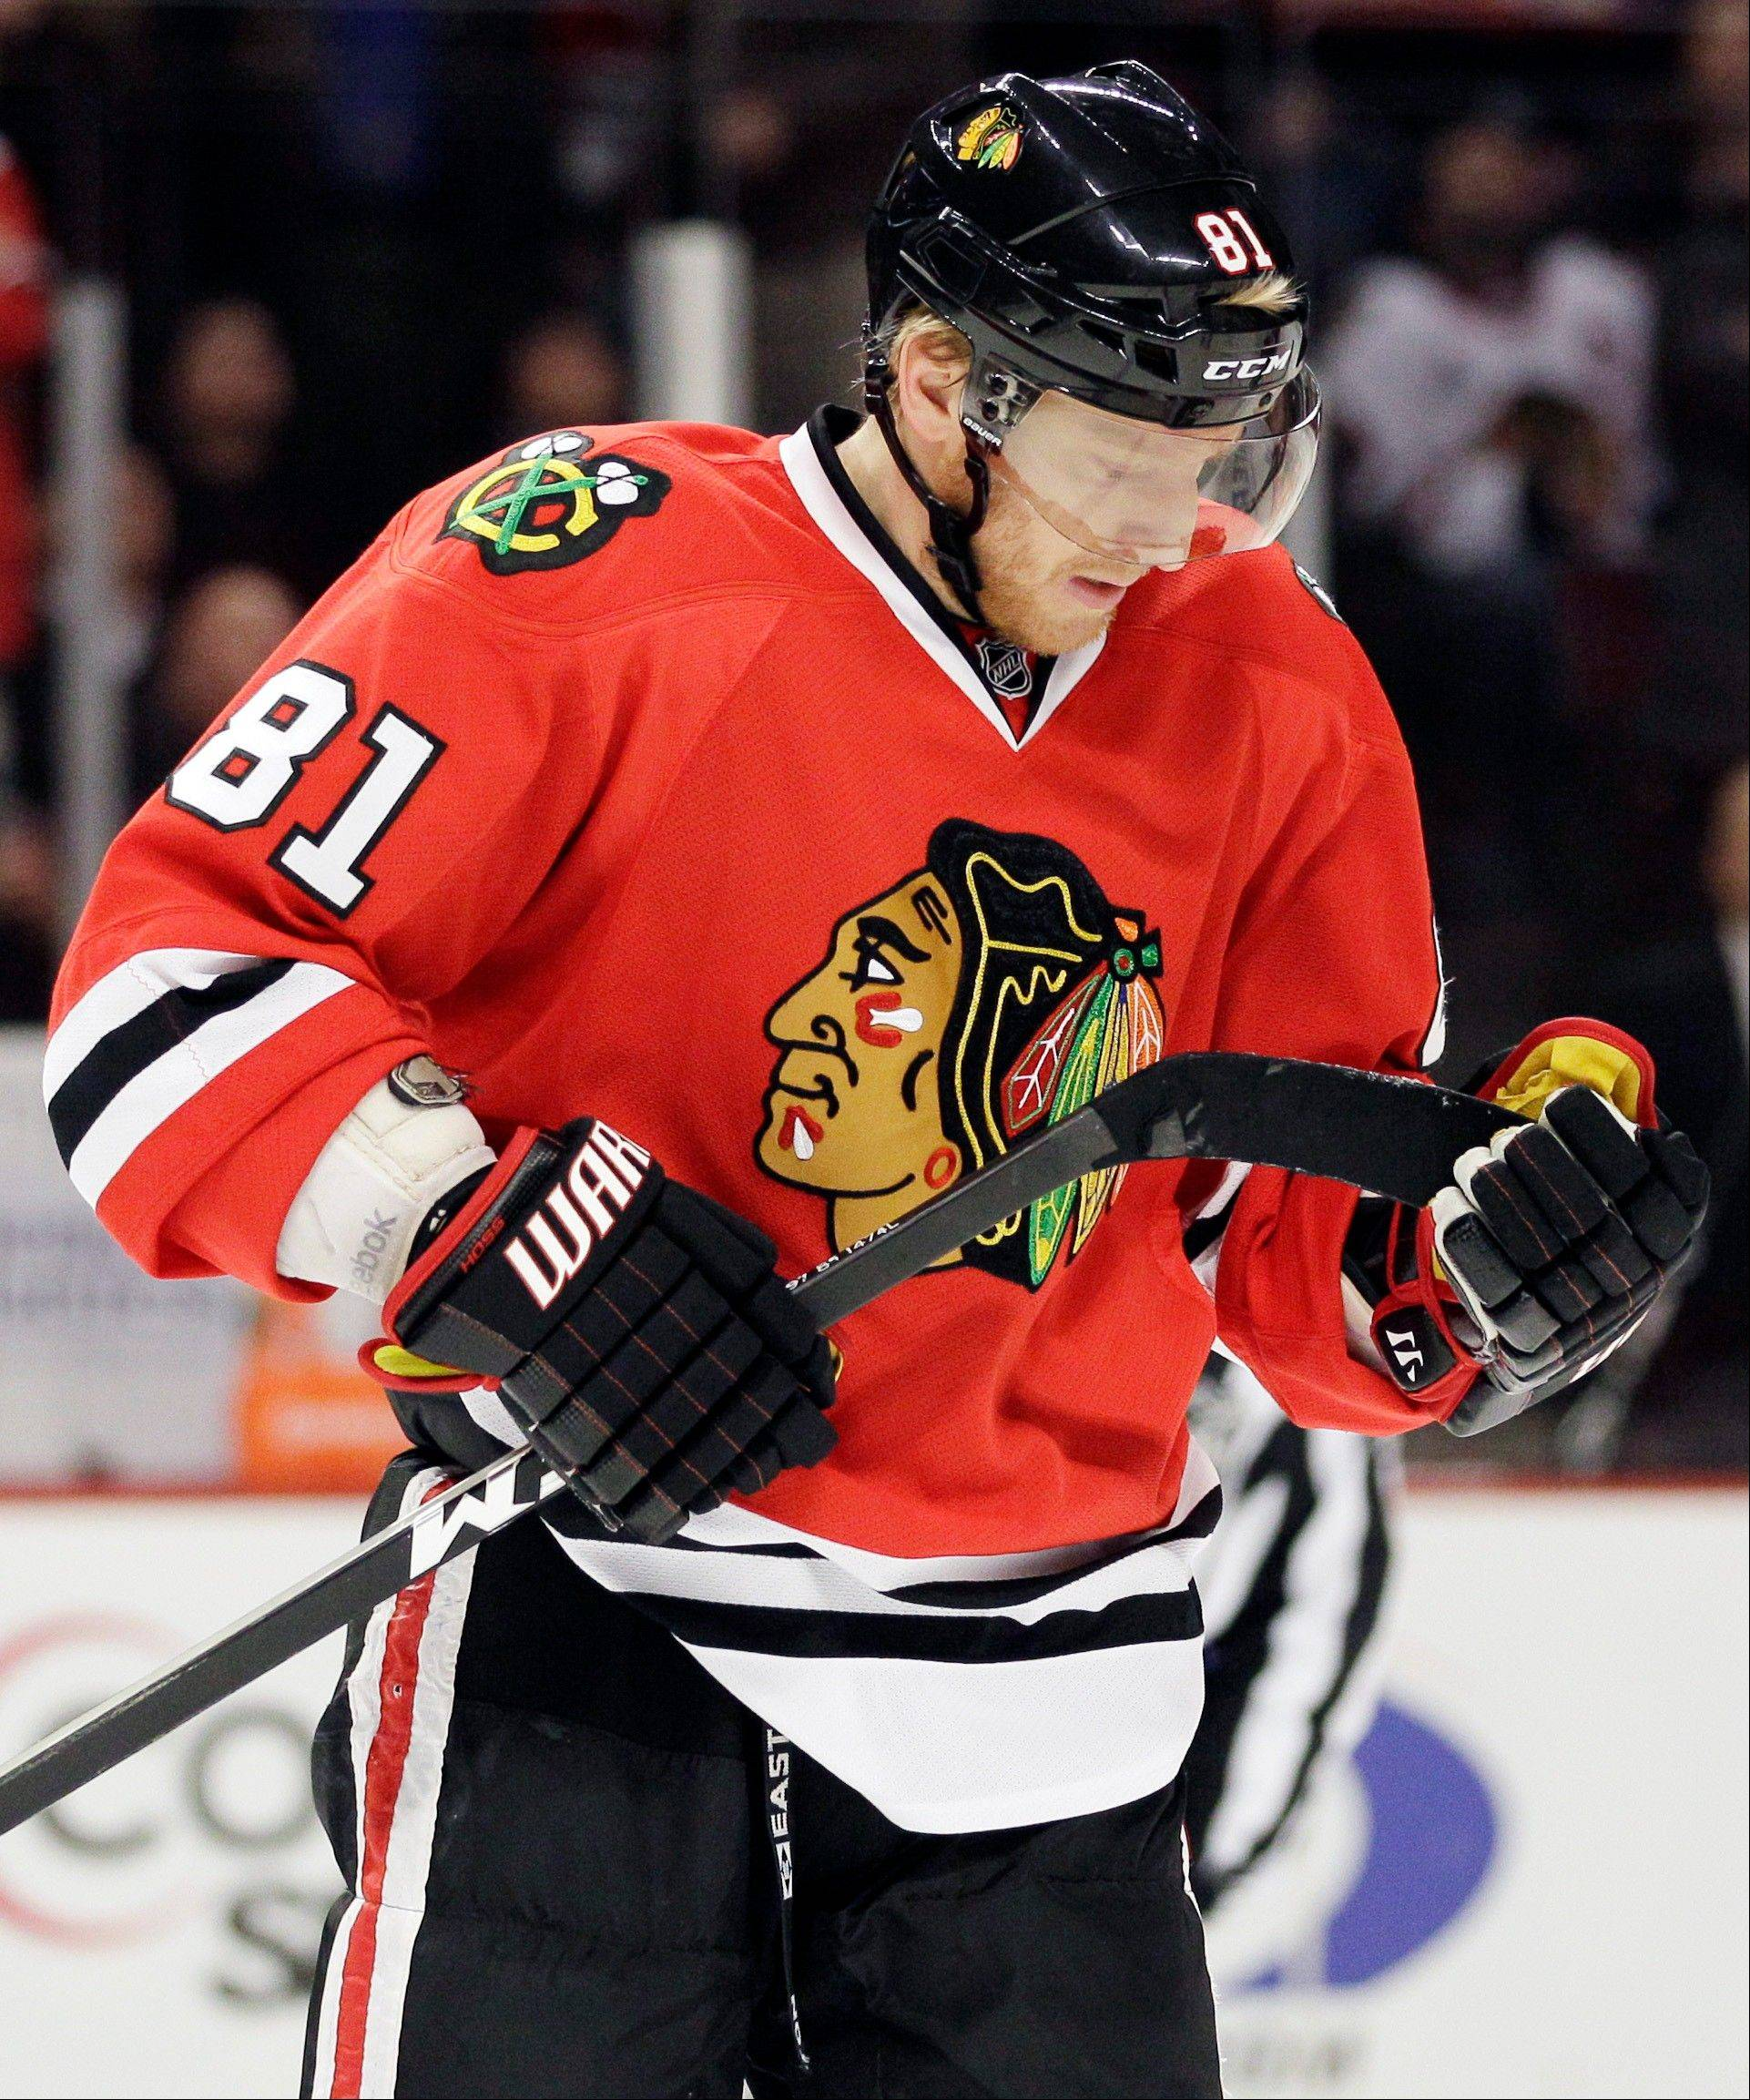 Marian Hossa will play in his 1,000th career game today when the Blackhawks play at Detroit. &q